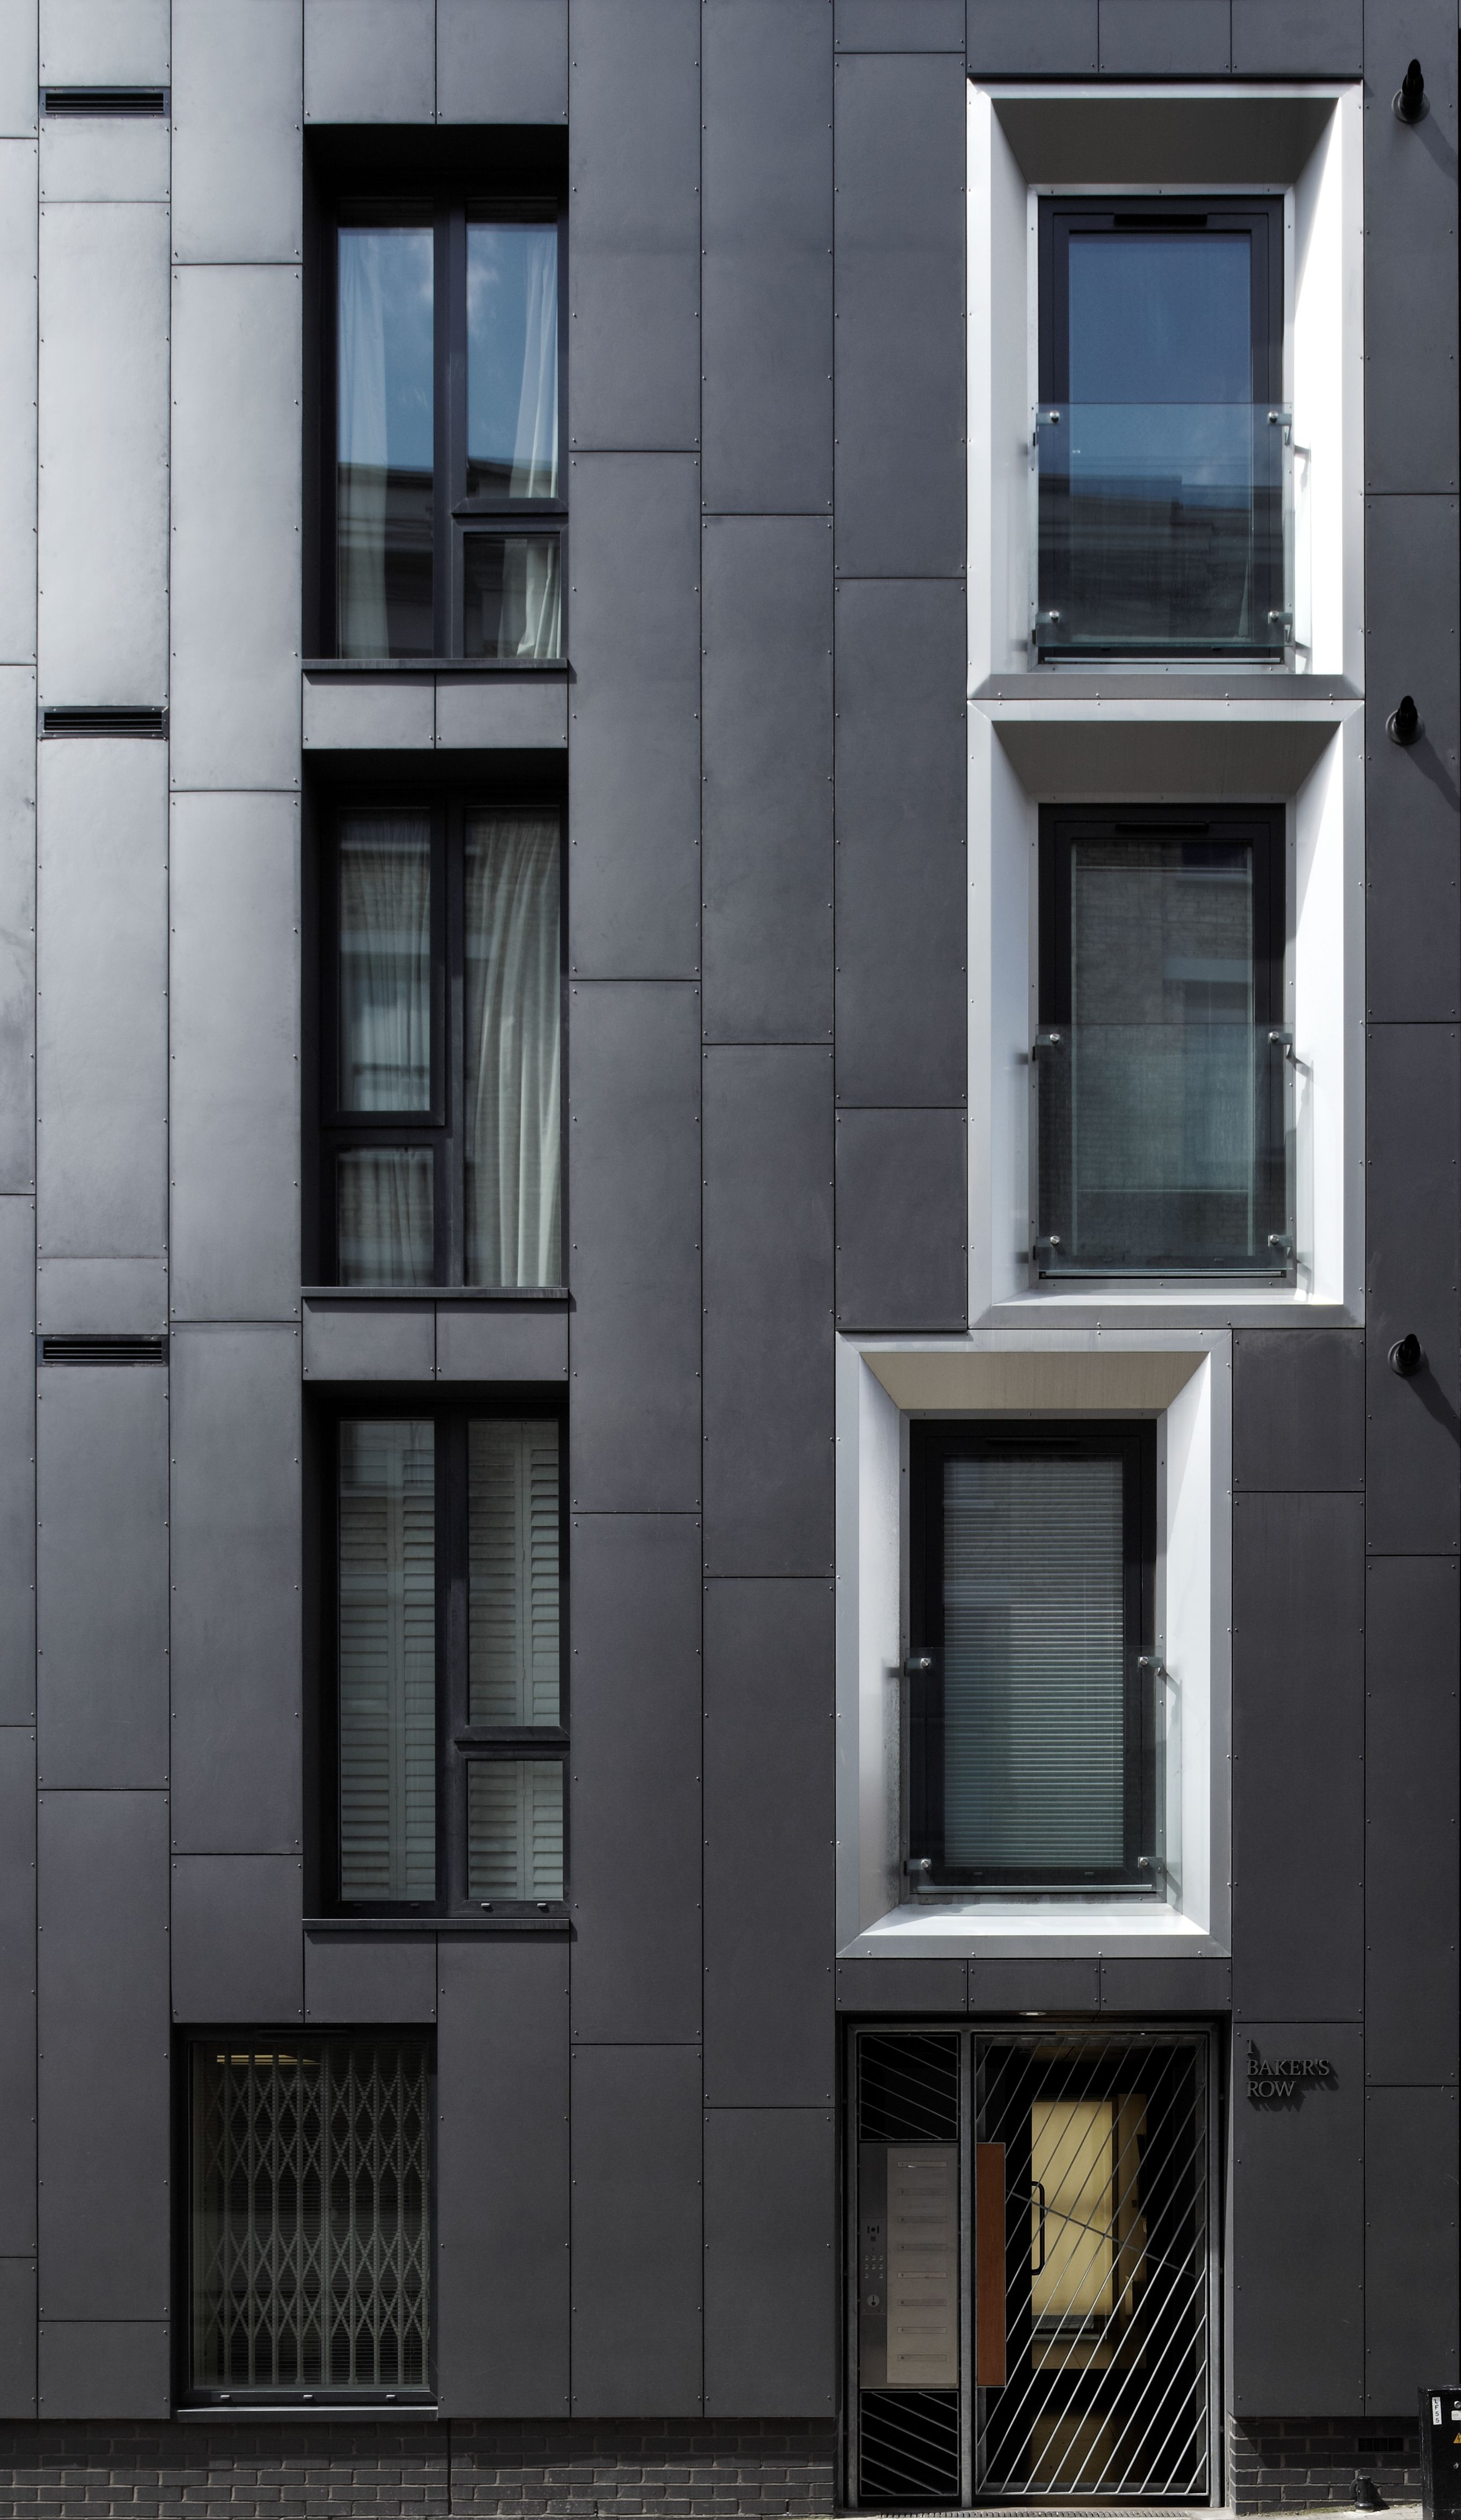 Anthracite equitone facade panels in bakers row london for Minimalismus haus tour